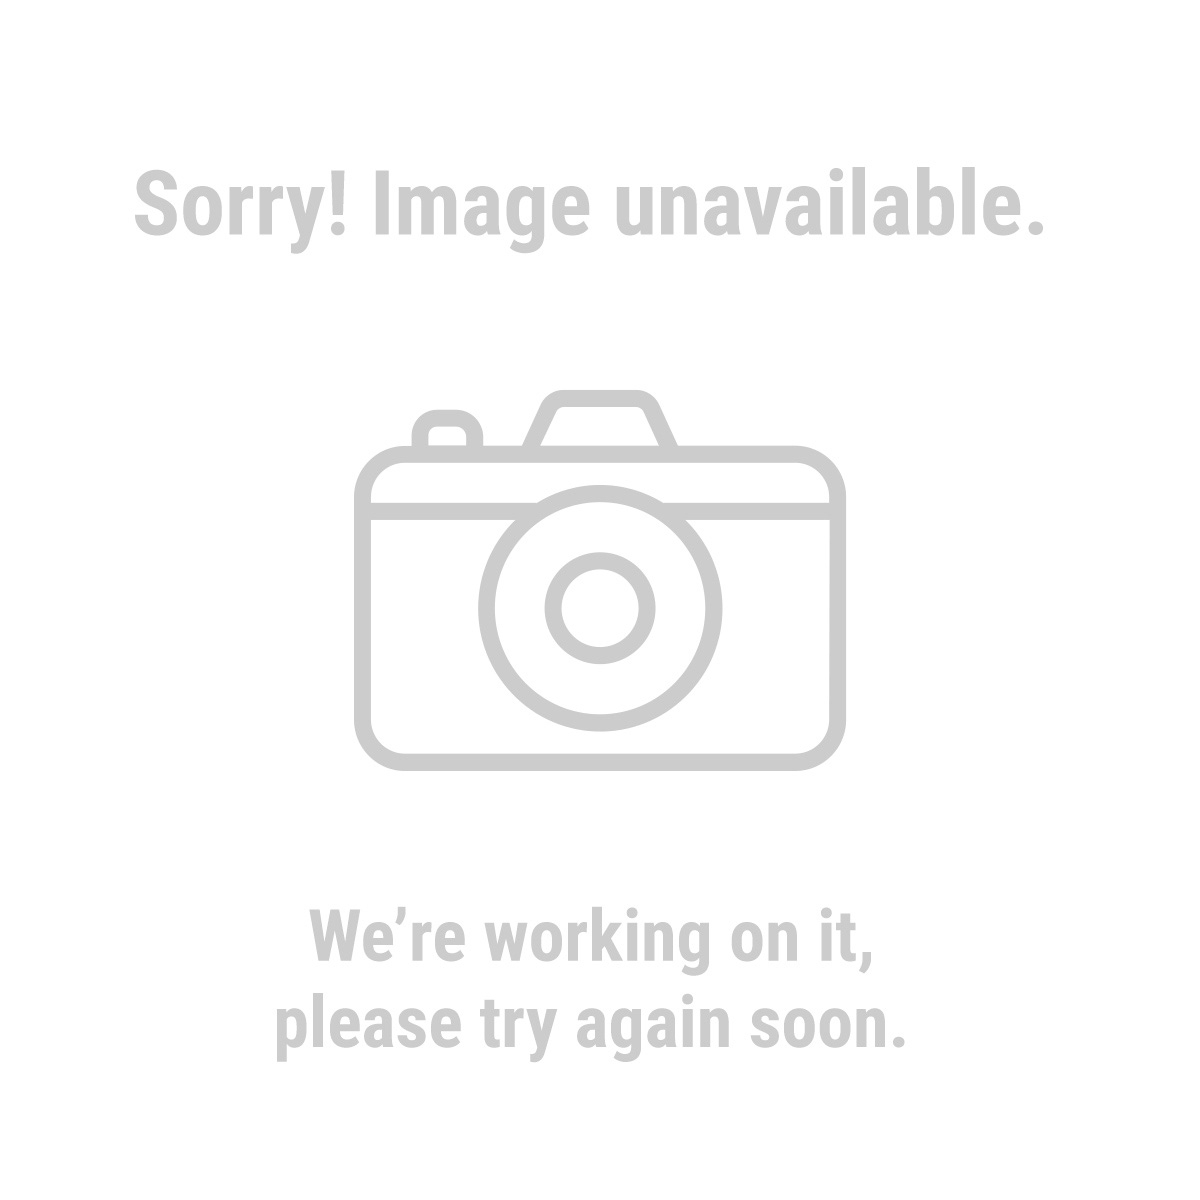 Maddox 63260 Front Wheel Bearing Adapters